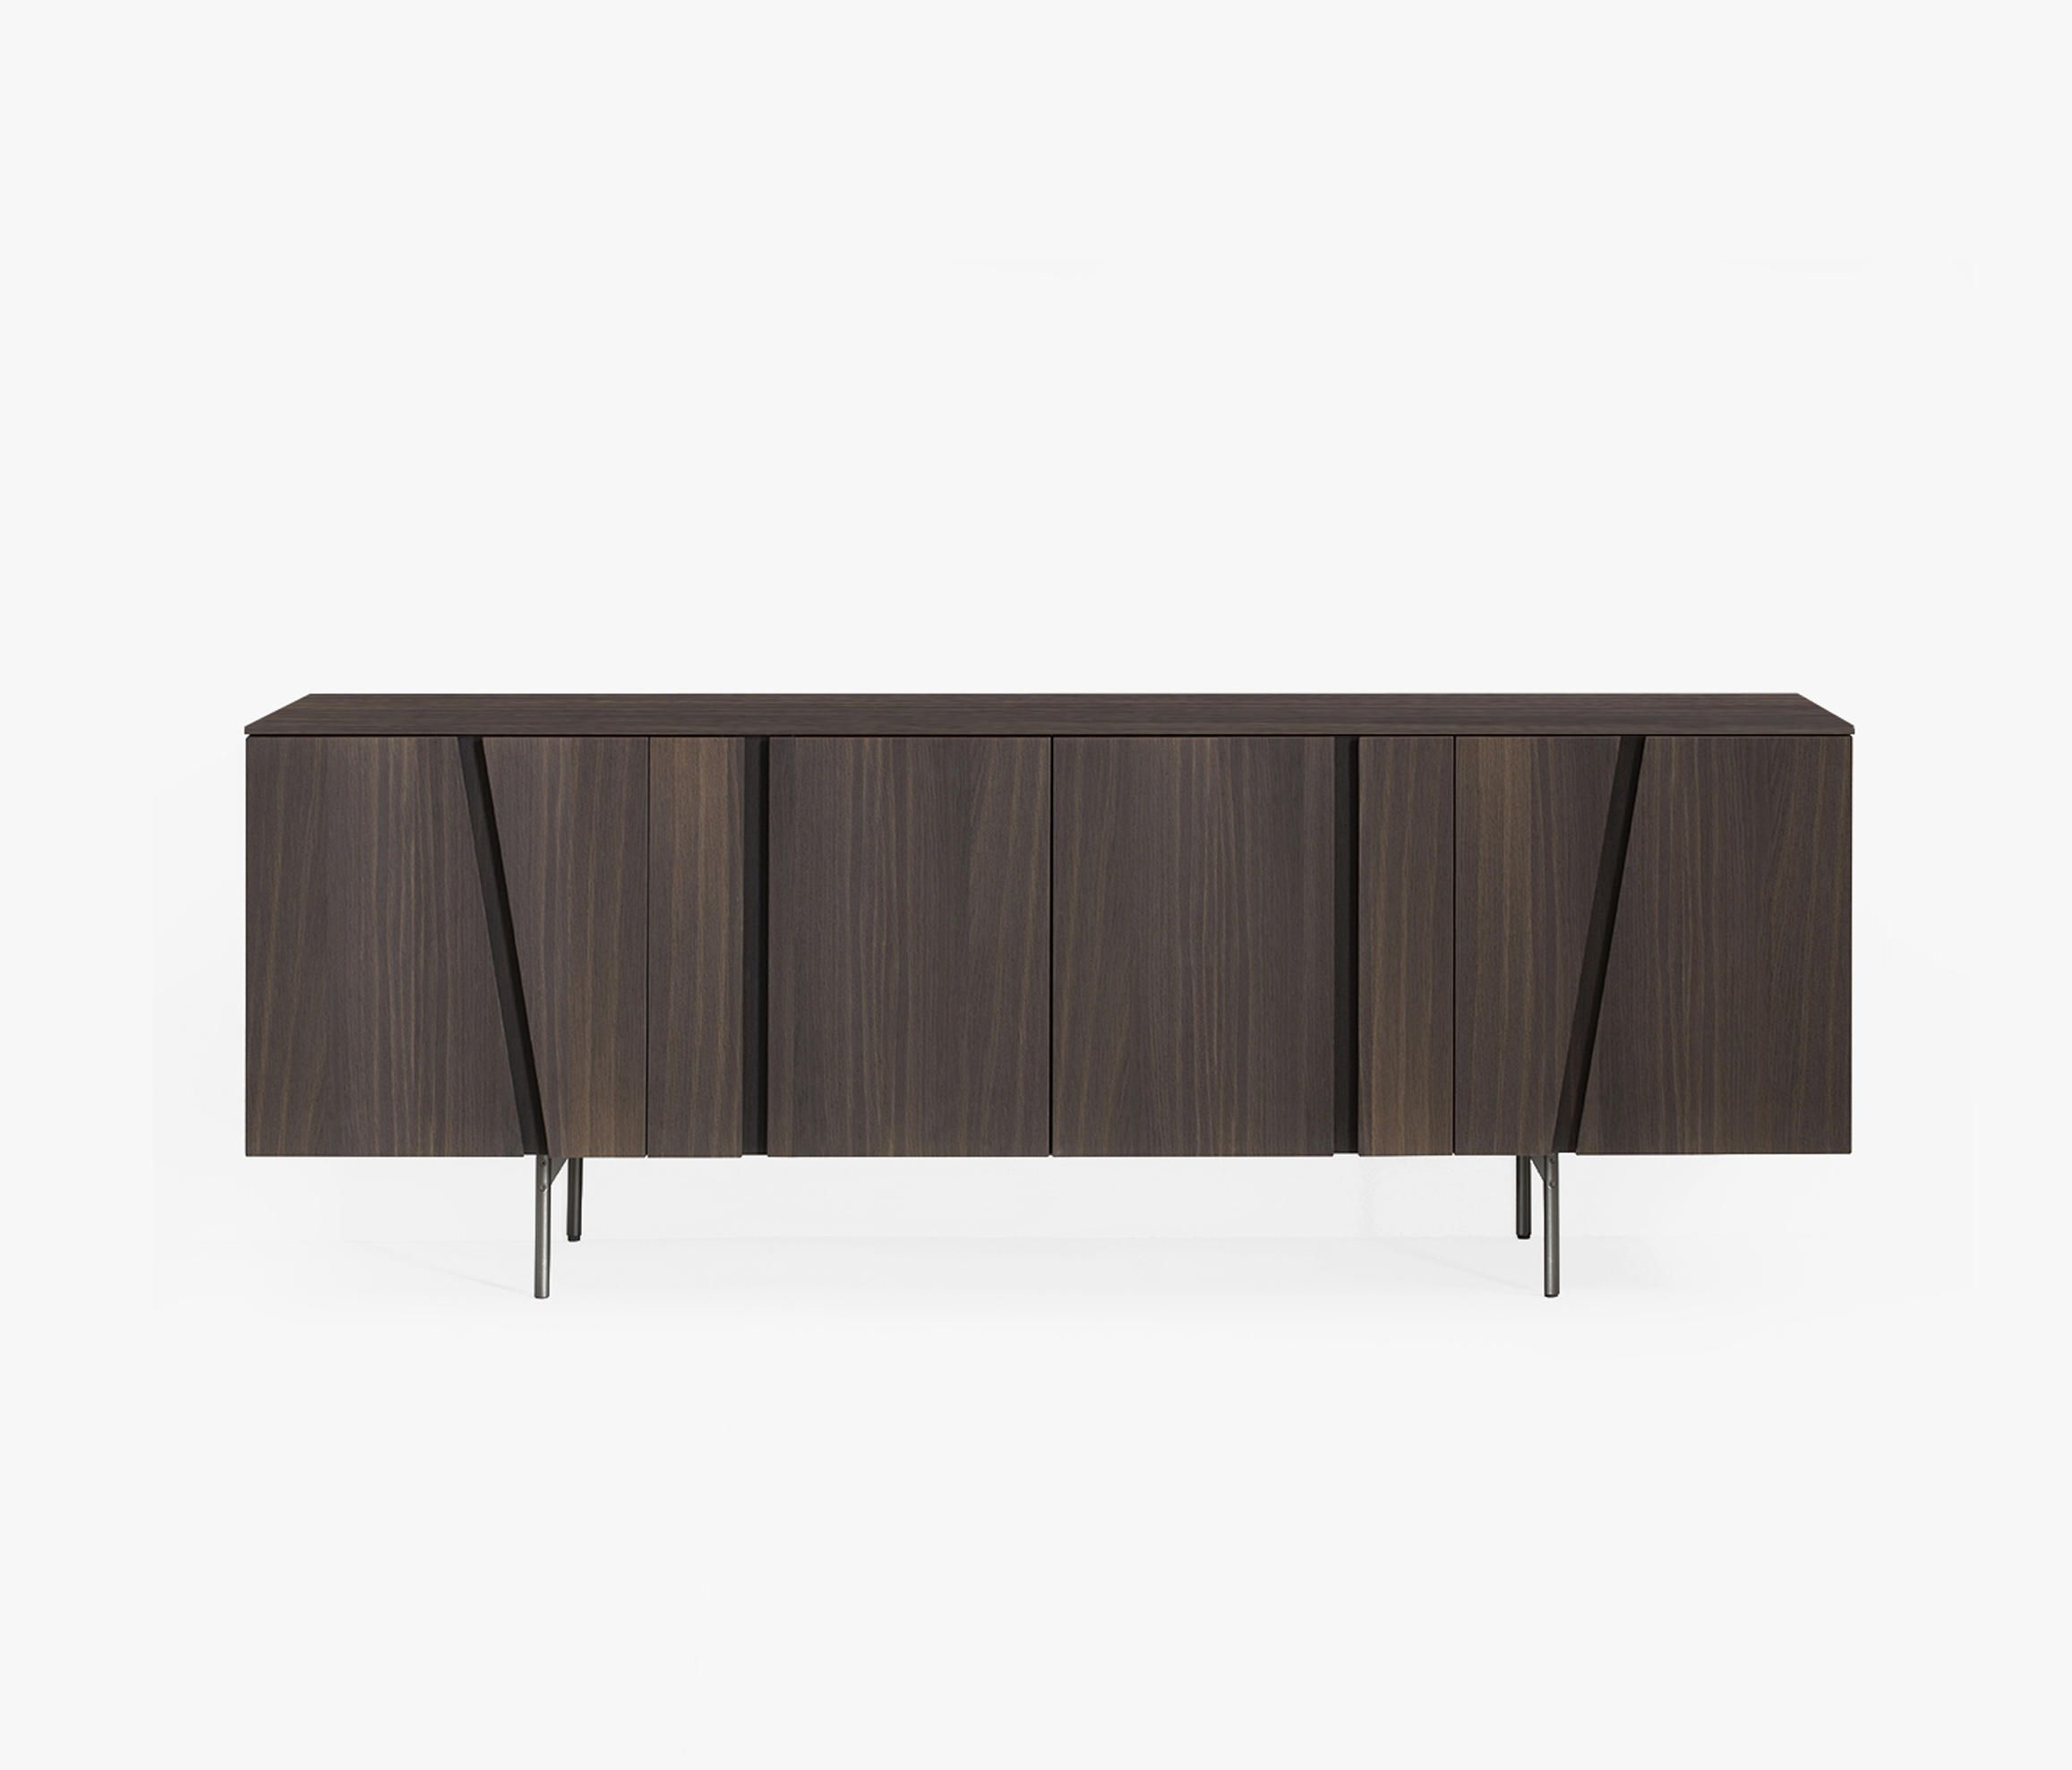 Picture Designer Sideboards From Lema All Information High Resolution Images Cads Catalogues Sideboard Designs Sideboard Furniture Sideboard Decor